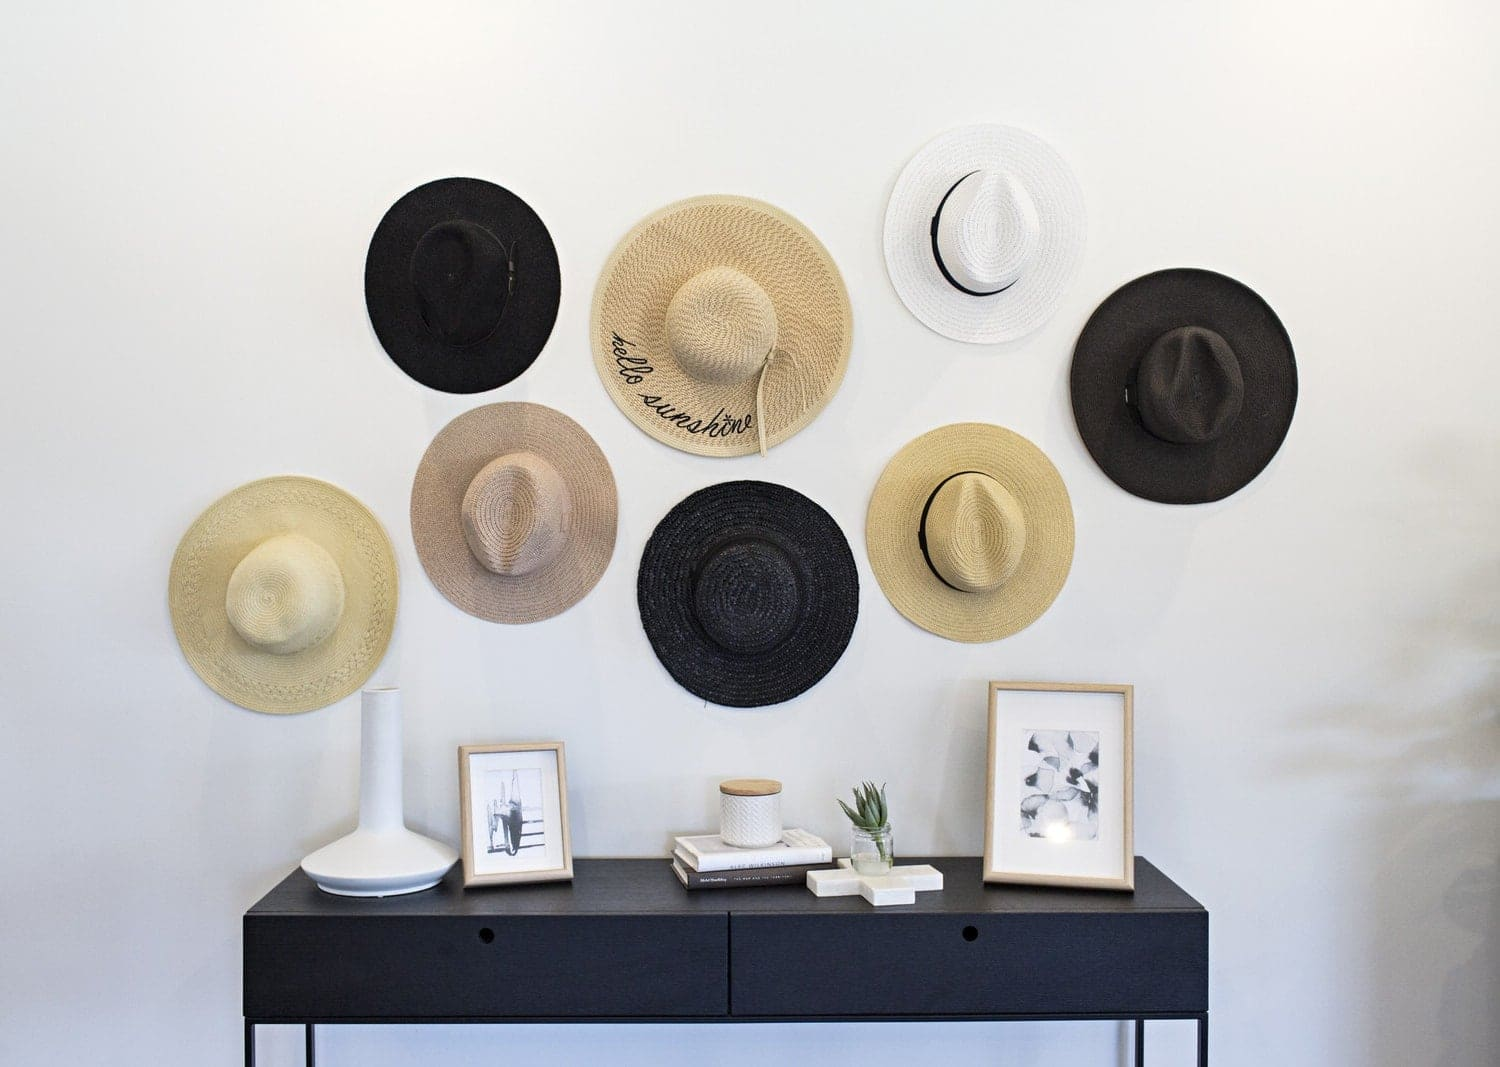 diy hat wall with round brim hats on wall